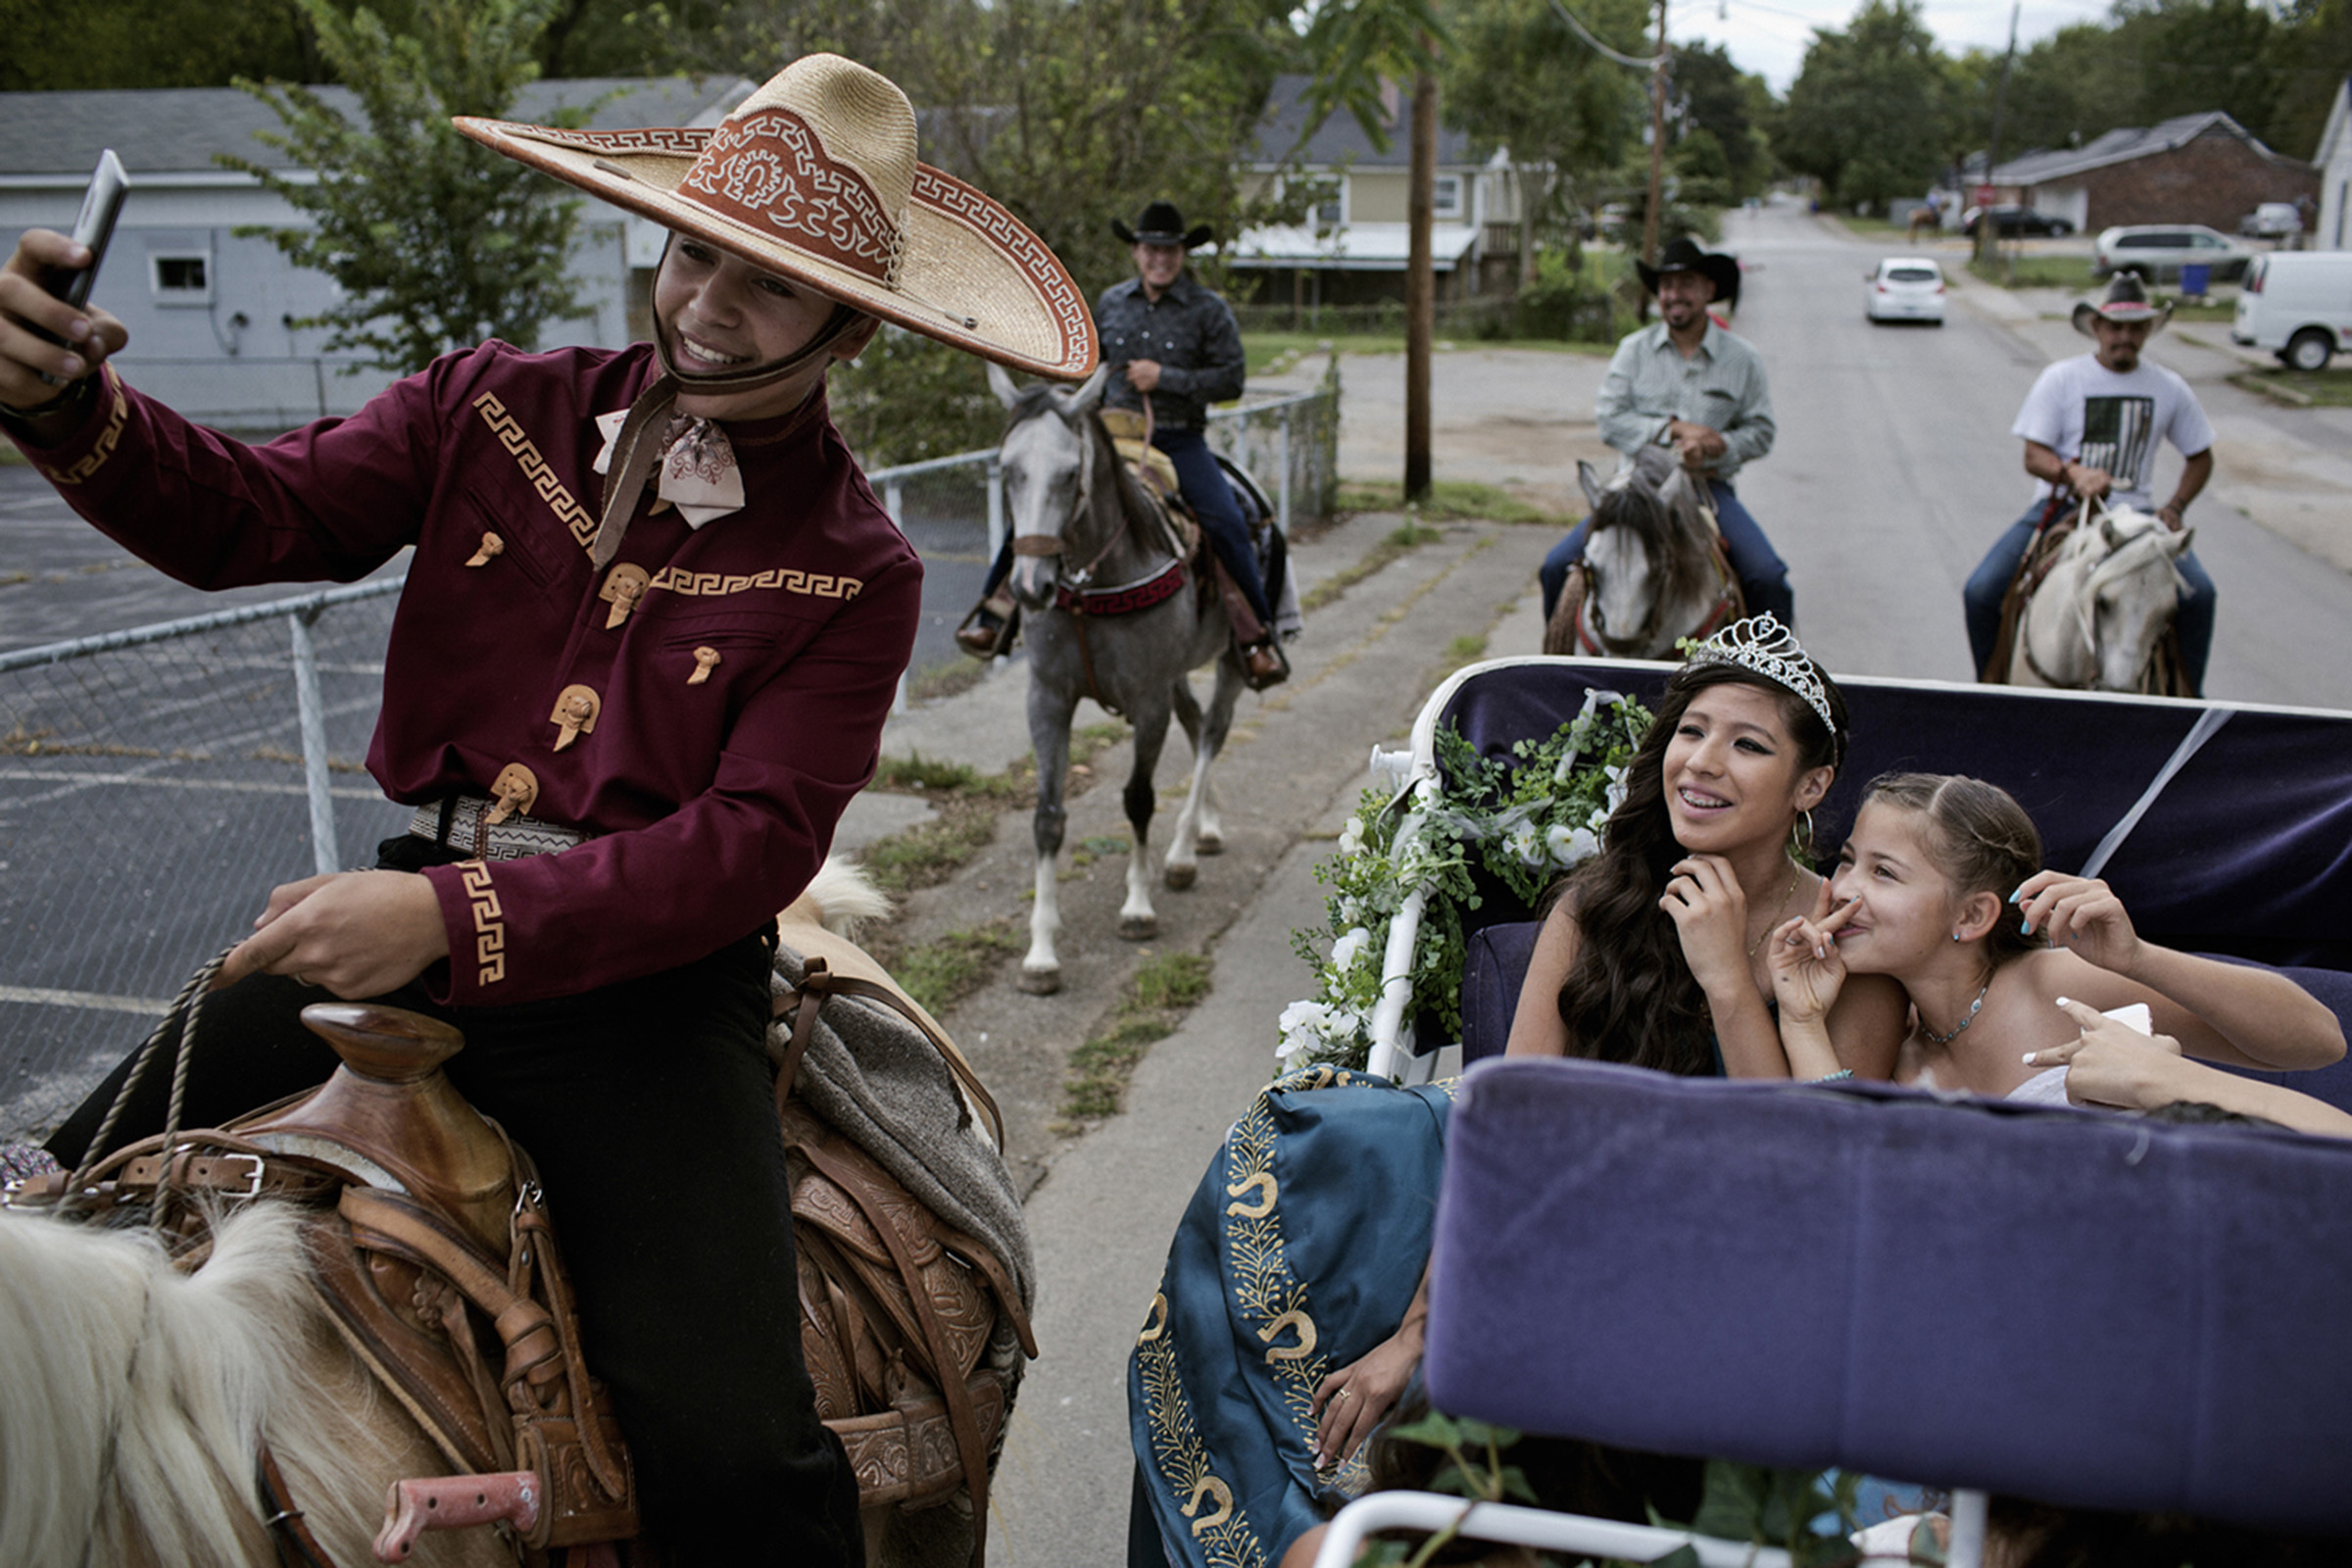 Nineteen-year-old Francisco Espinoza snapped a selfie while 15-year-old Elisa Yamileth and her 12-year-old cousin Nayda Espinoza on the, left posed for the picture during a carriage ride through the neighborhood. They were headed towards church to celebrate Elisa's Quinceañera, the rite of passage when a young girl becomes a woman. (Photo by Betina Garcia/GroundTruth)